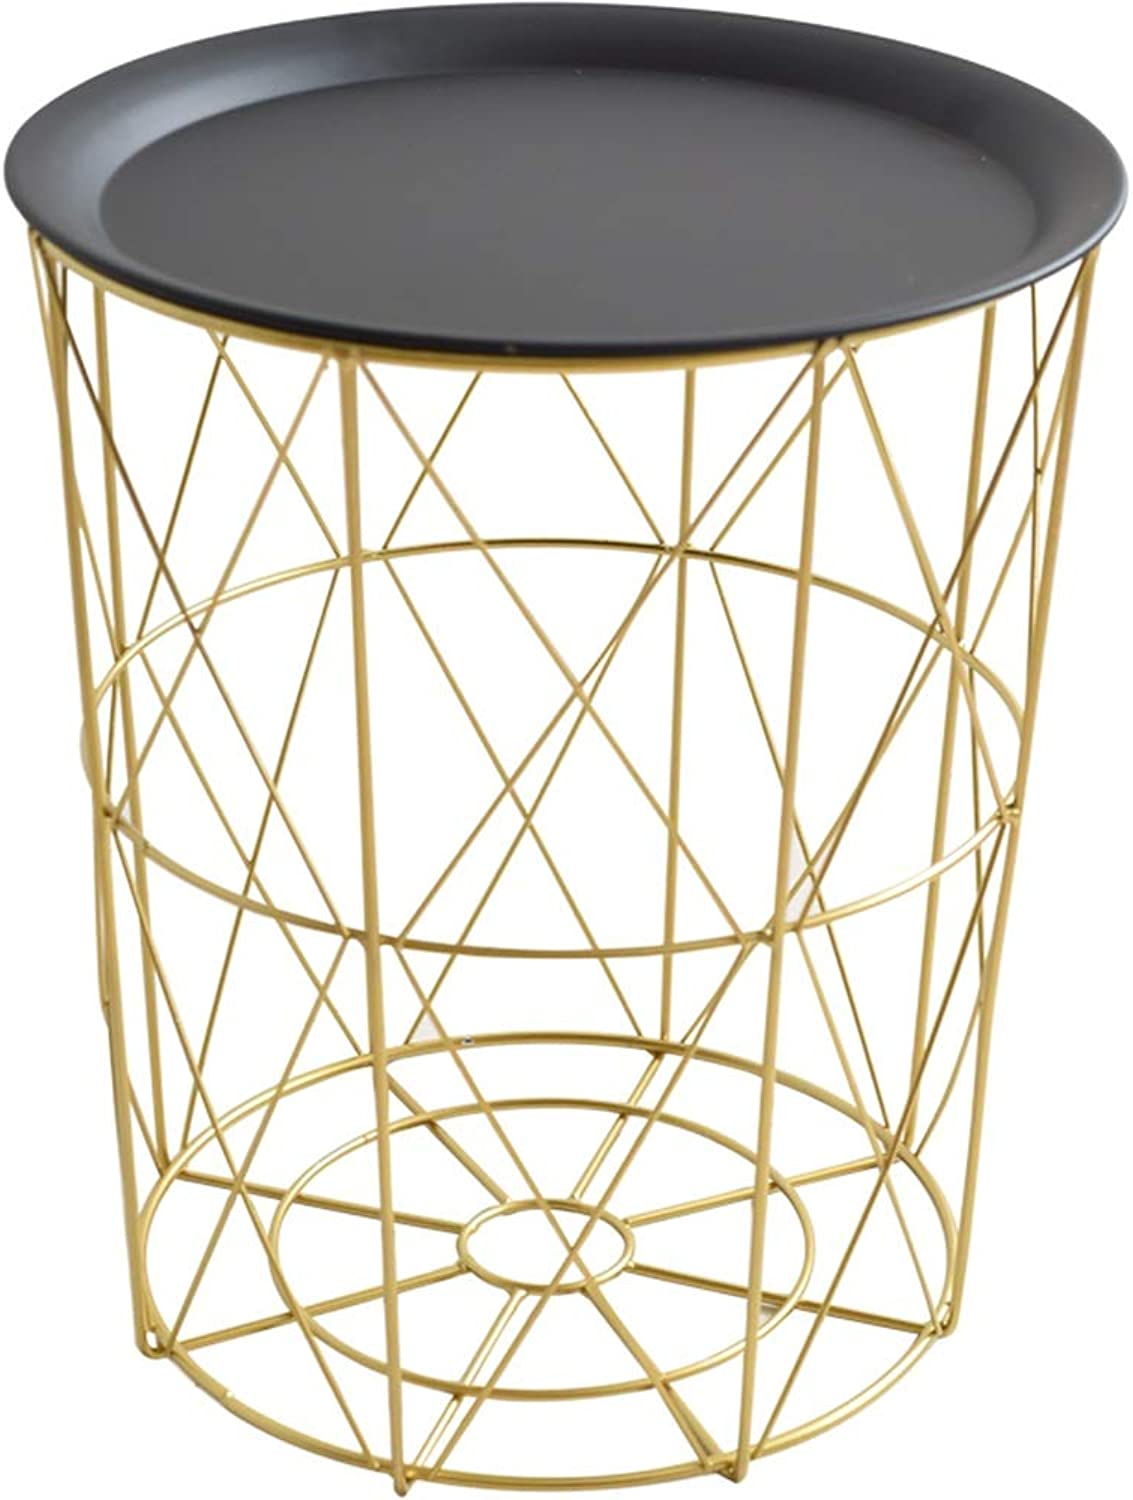 Coffee Table Nordic Wrought Iron Furniture Multifunctional gold Storage Basket Dining Table Living Room Side Table (Size   H40CM)